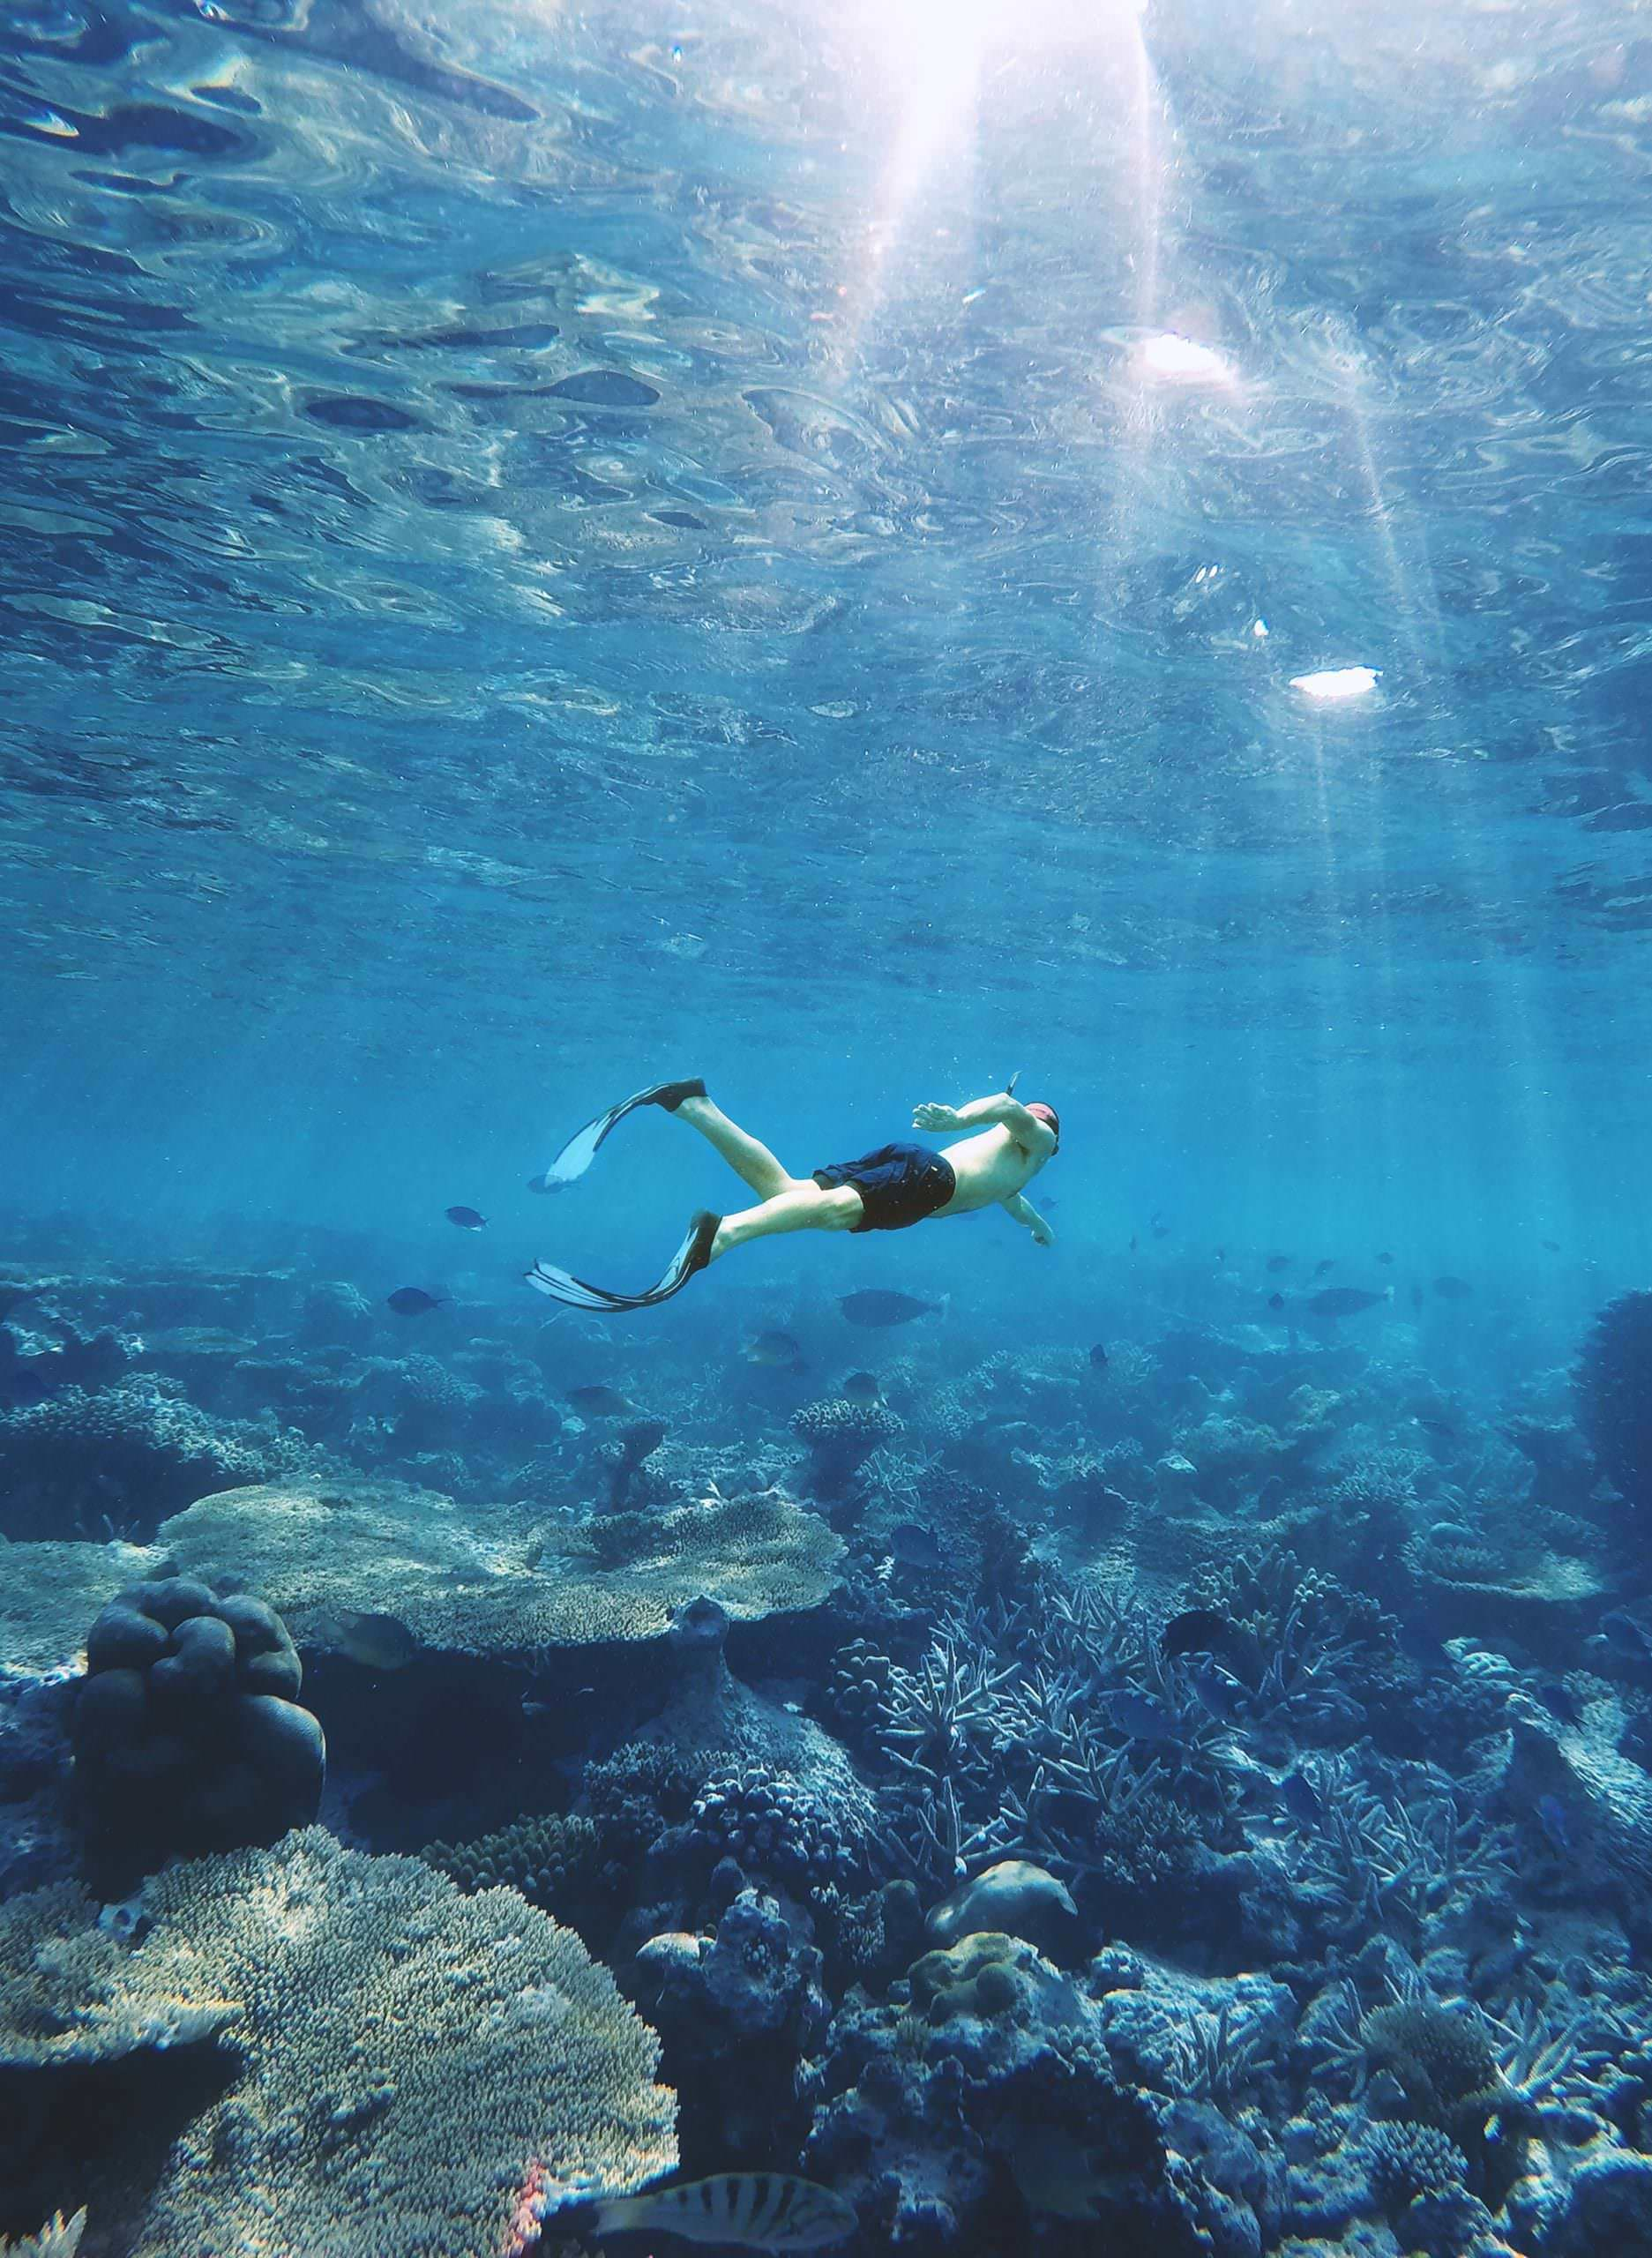 A freediving man swims over a reef